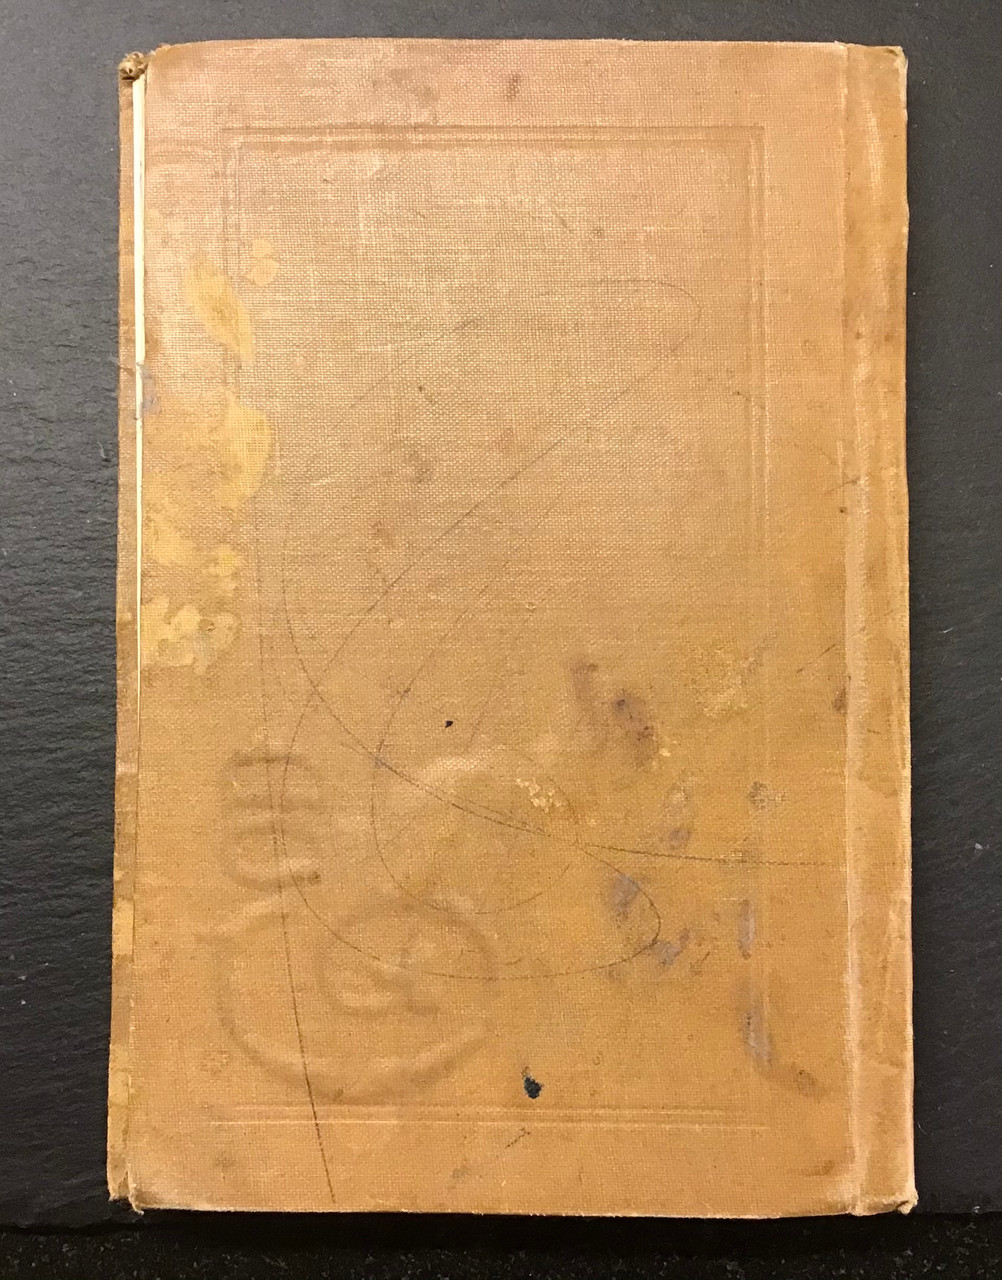 GD 971 SMALL BOOK = THE WAR RECORD OF A WILTSHIRE PARISH STEEPLE ASHTON & GREAT HINTON 1914 - 1919